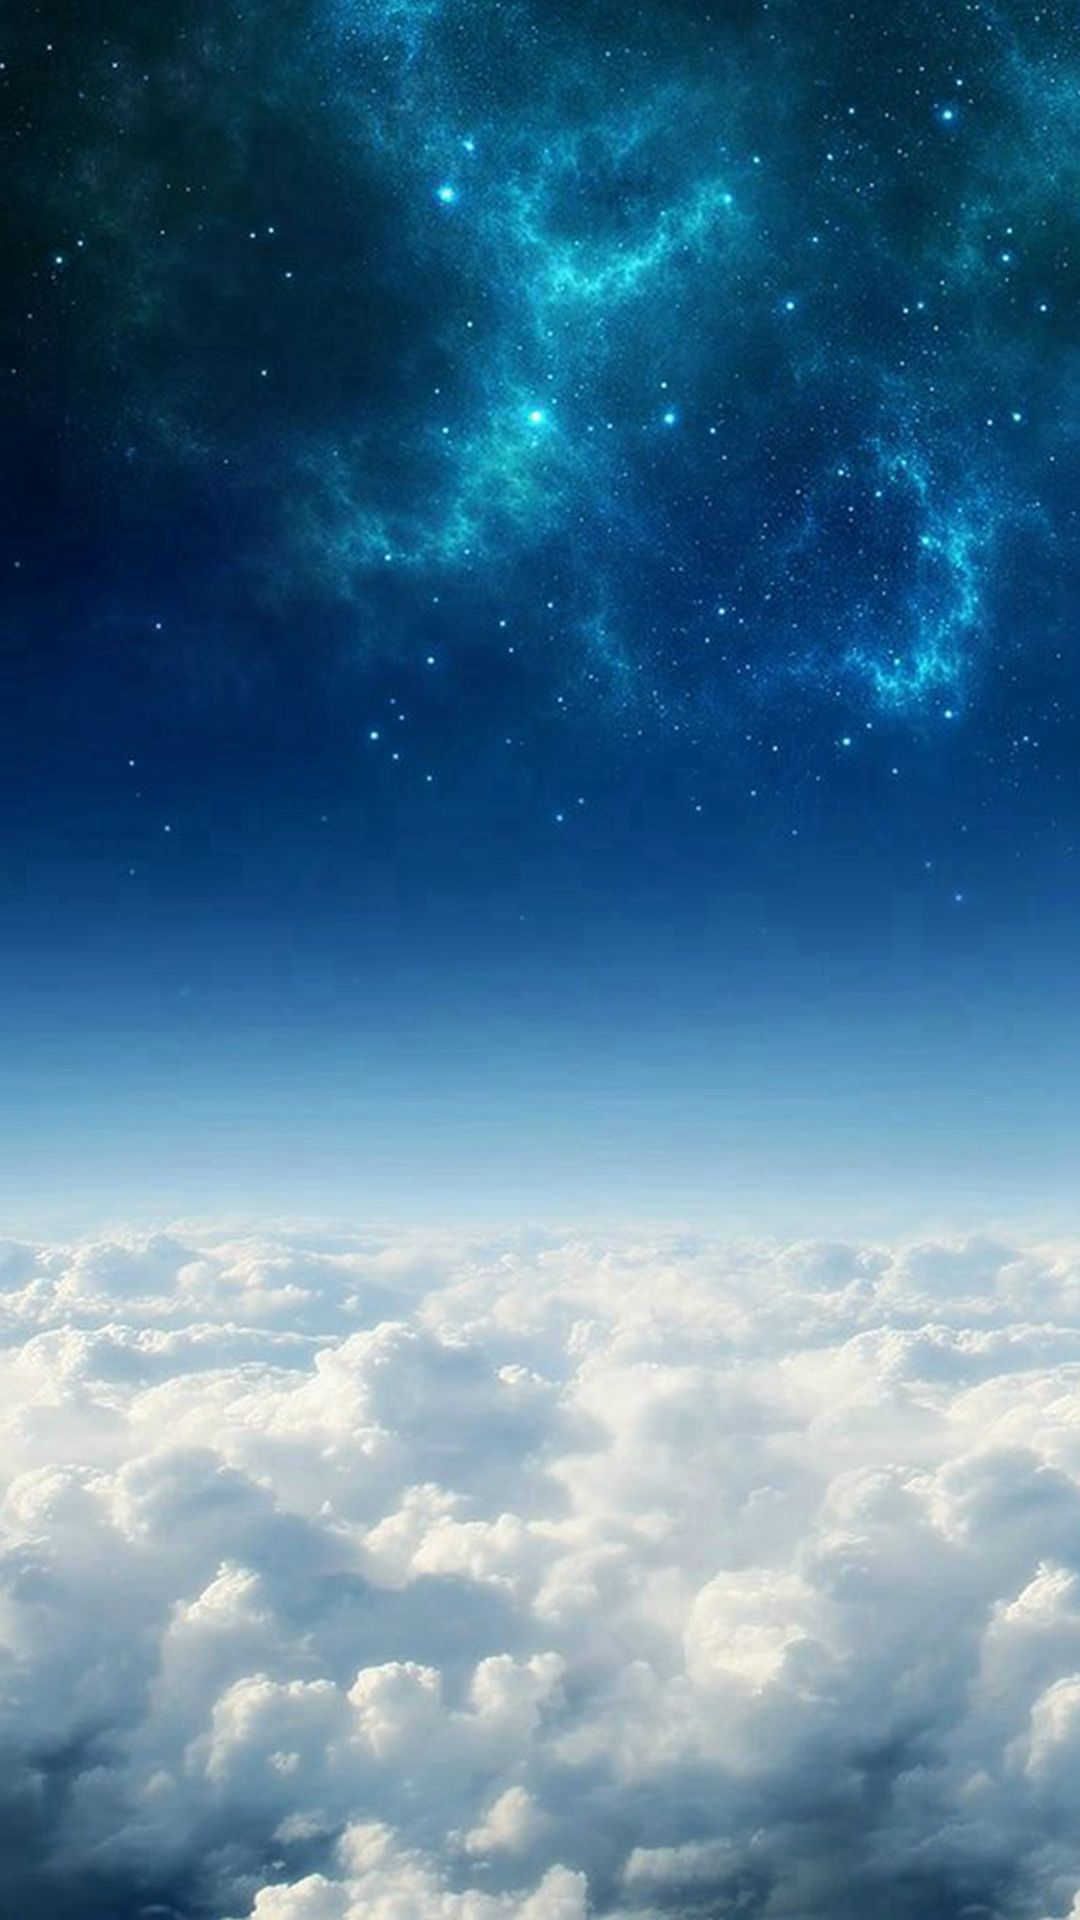 Space Above The Clouds iPhone 8 wallpaper iPhone 8 wallpapers